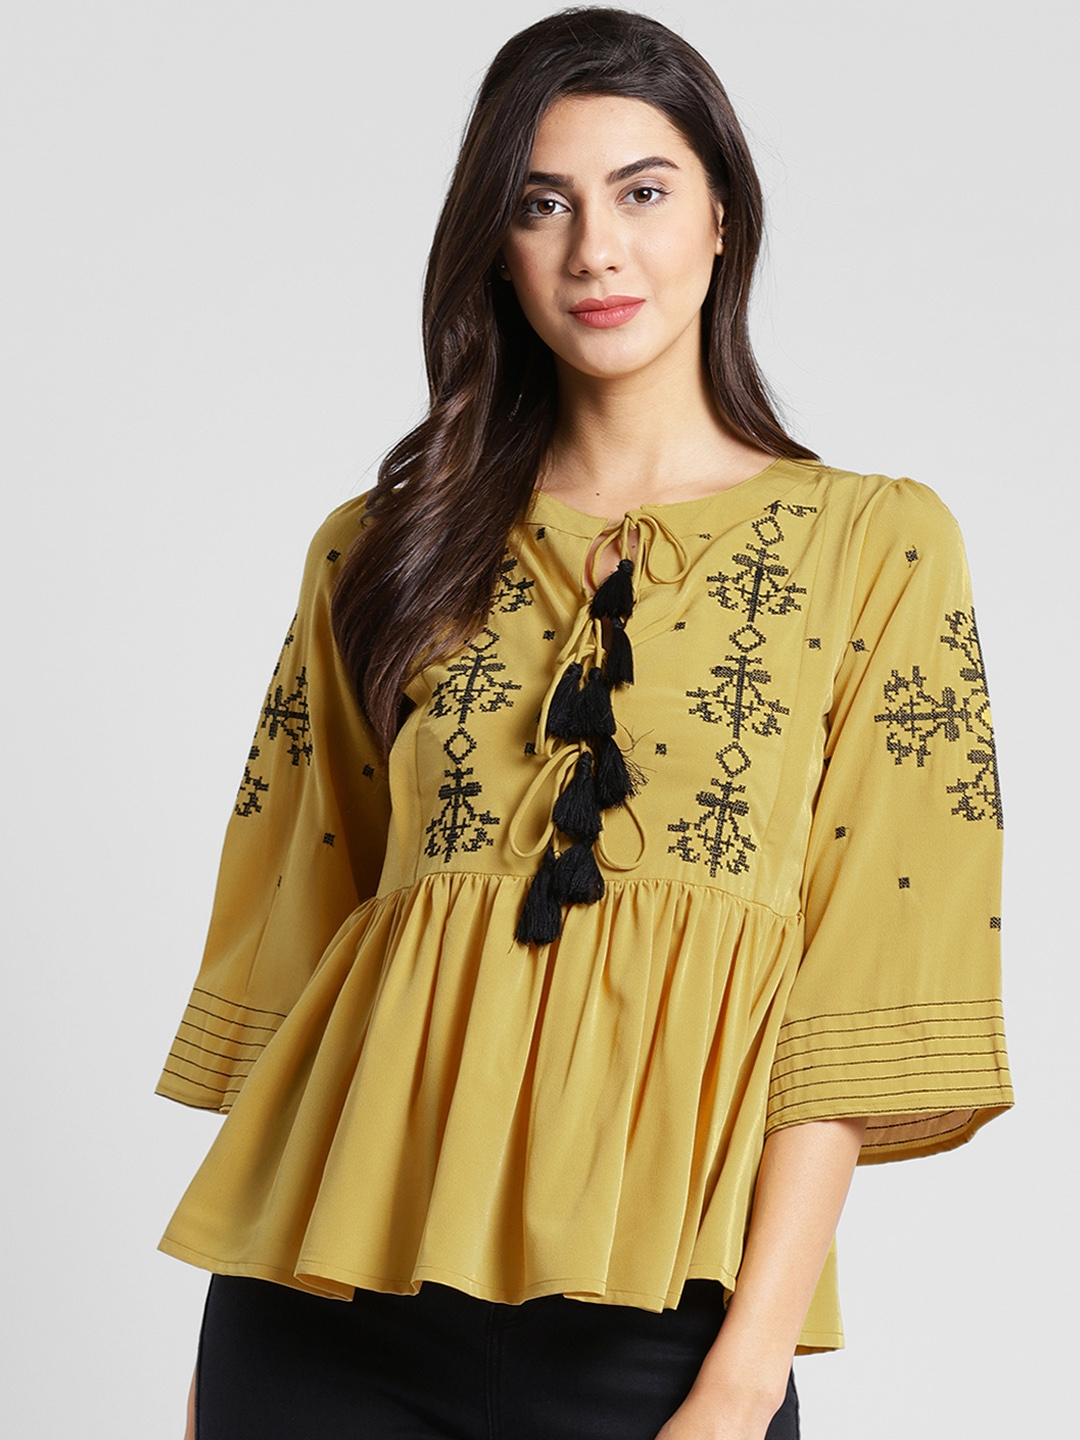 e22d57bc1d1275 Buy PlusS Women Mustard Brown Embroidered A Line Top - Tops for ...